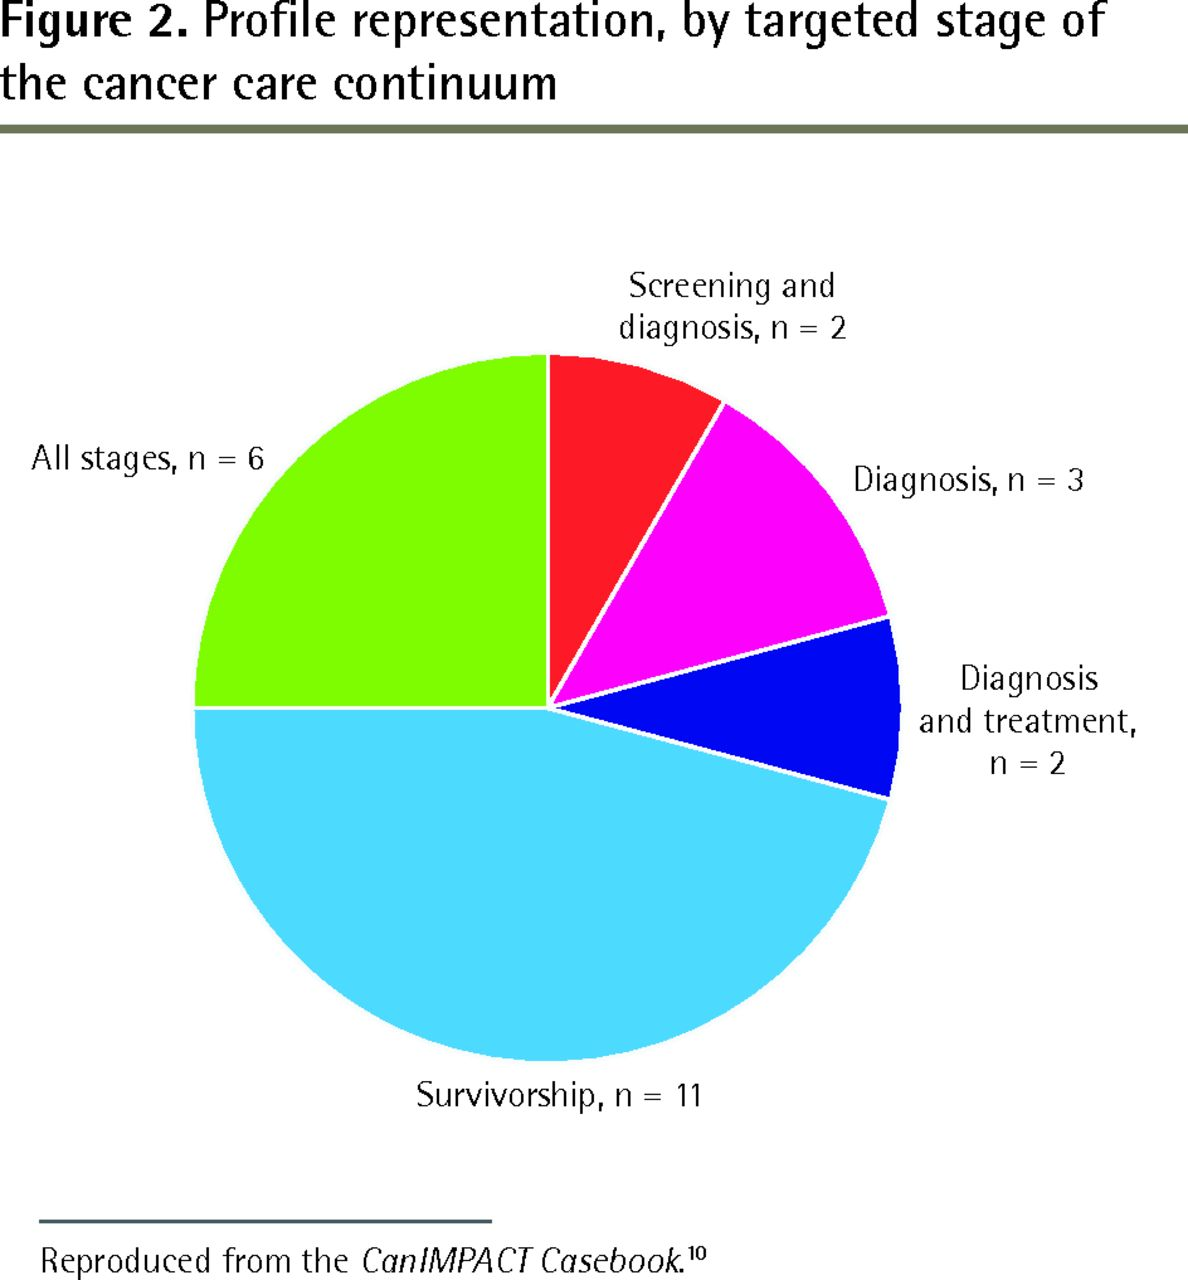 Documenting coordination of cancer care between primary care